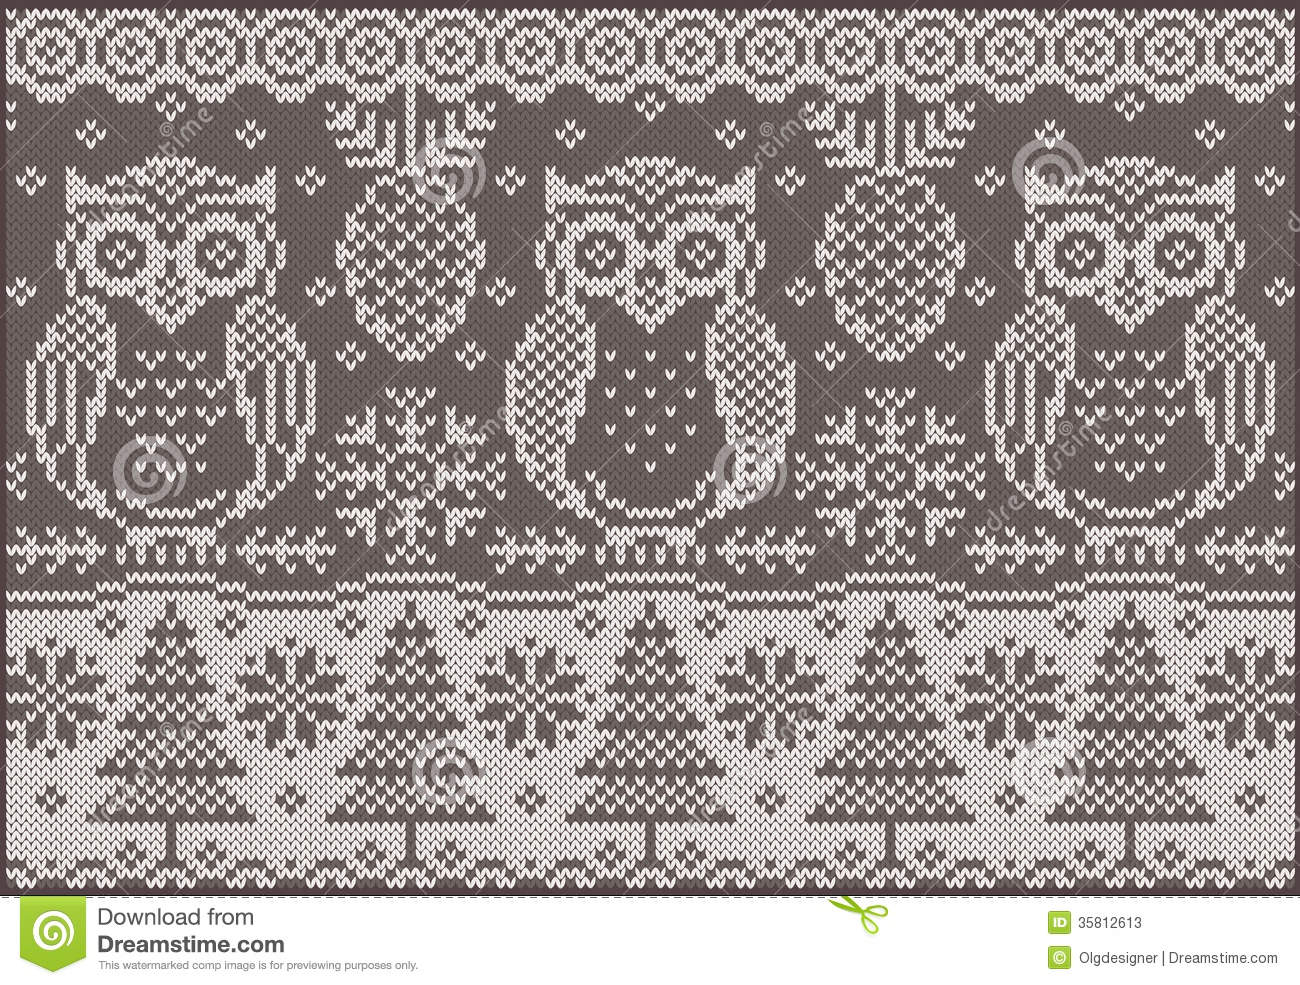 Knitted pattern with owls stock vector. Illustration of decorative ...